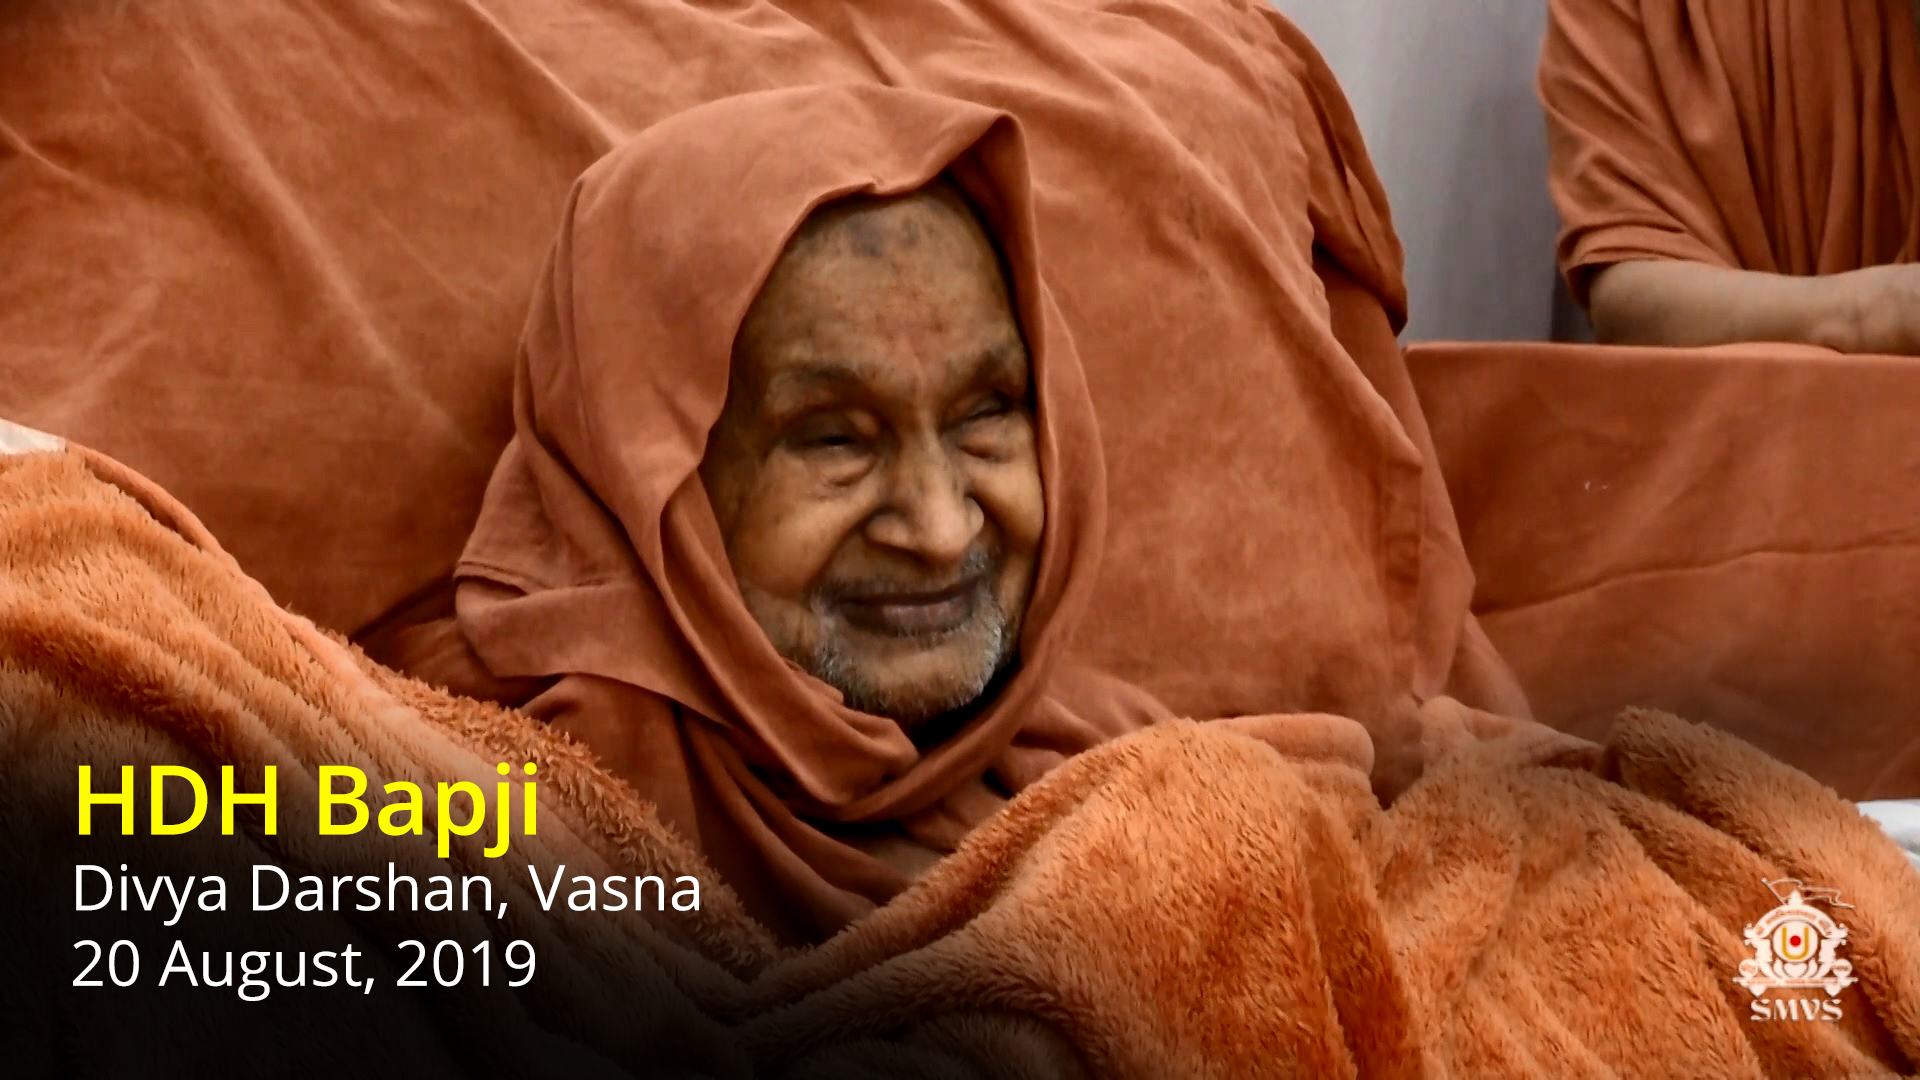 HDH Bapji Divya Darshan, Vasna | 20 August, 2019 (Video)